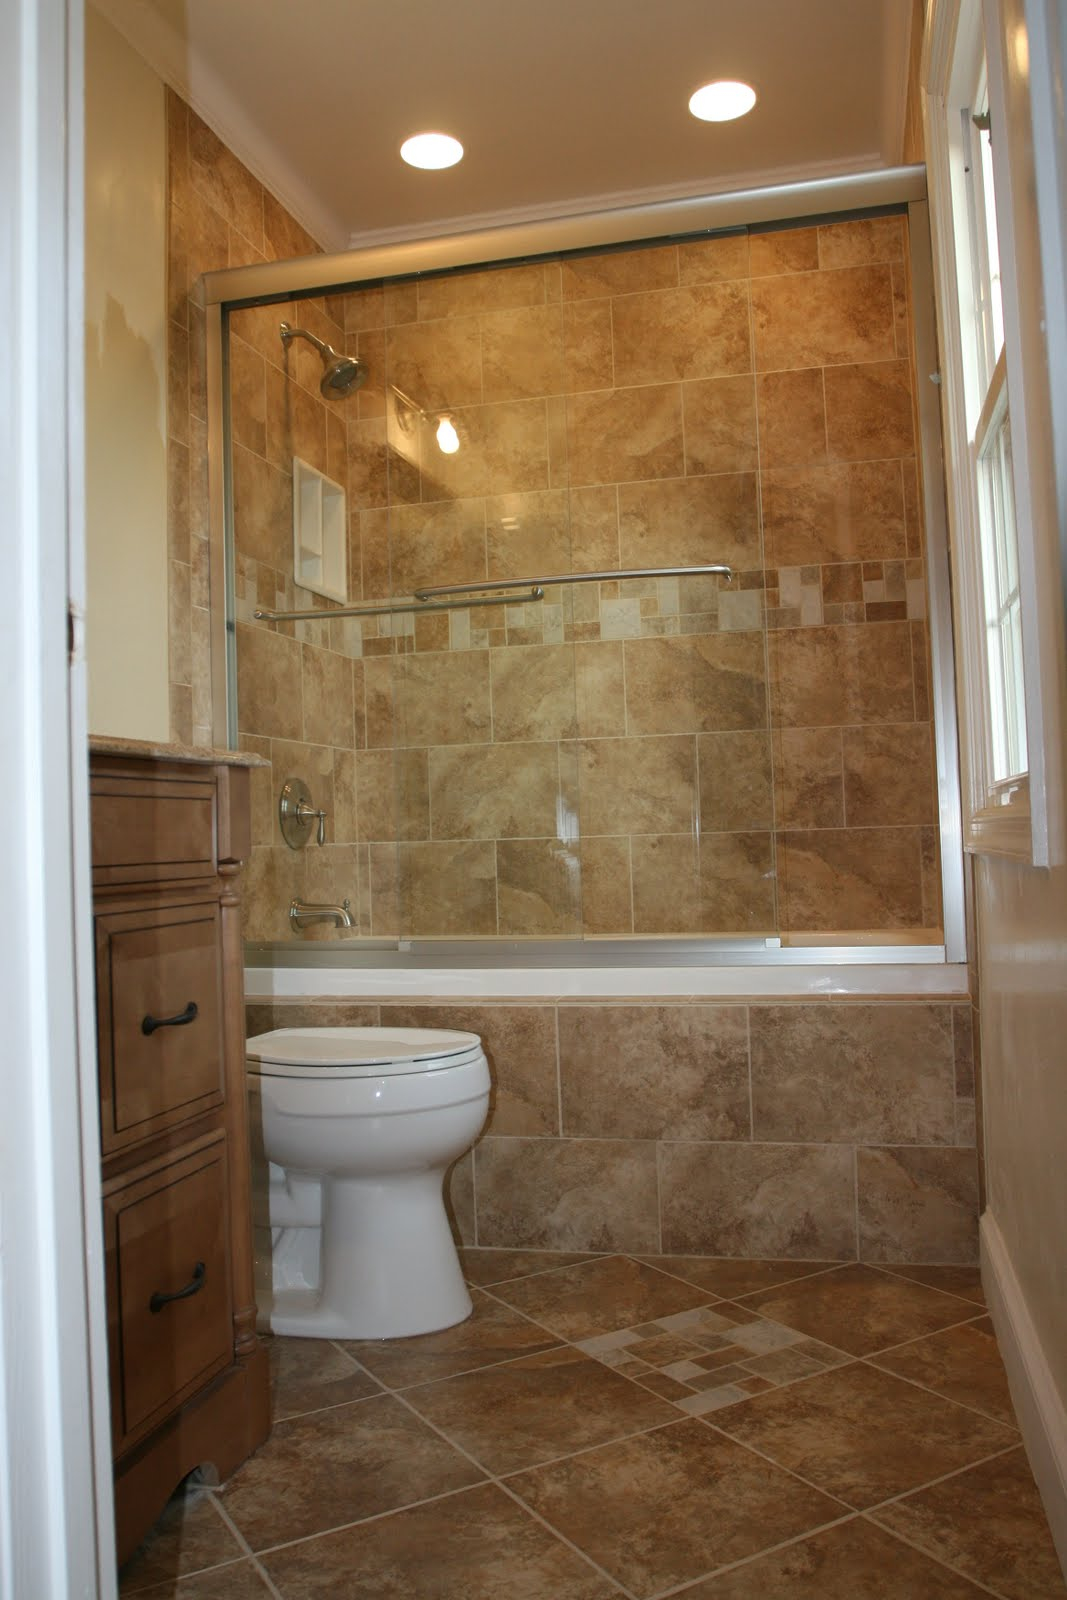 Bathroom remodeling design ideas tile shower niches Bathroom tub tile design ideas